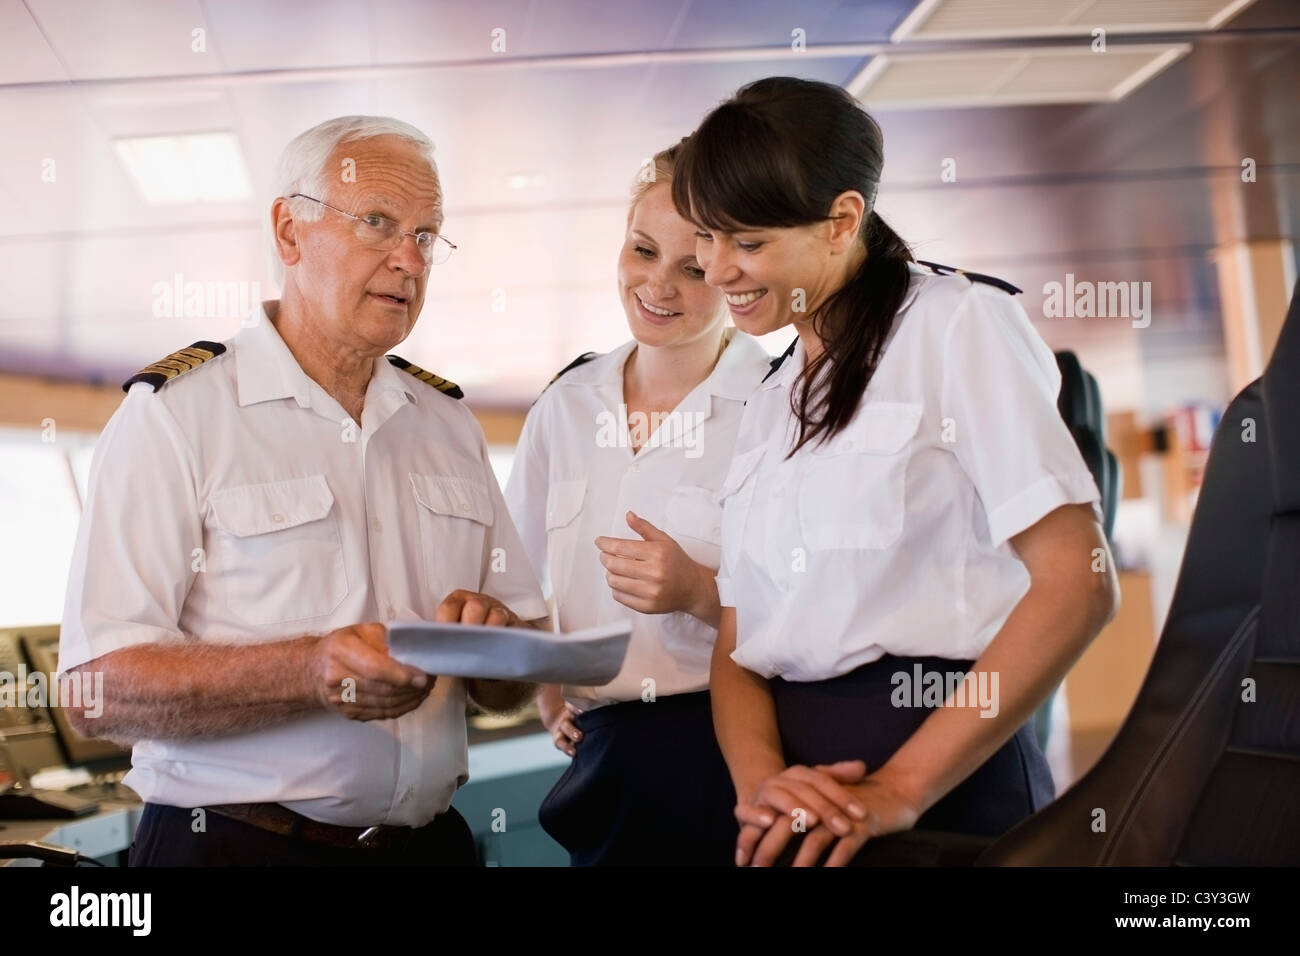 Captain giving advices to his assistants - Stock Image